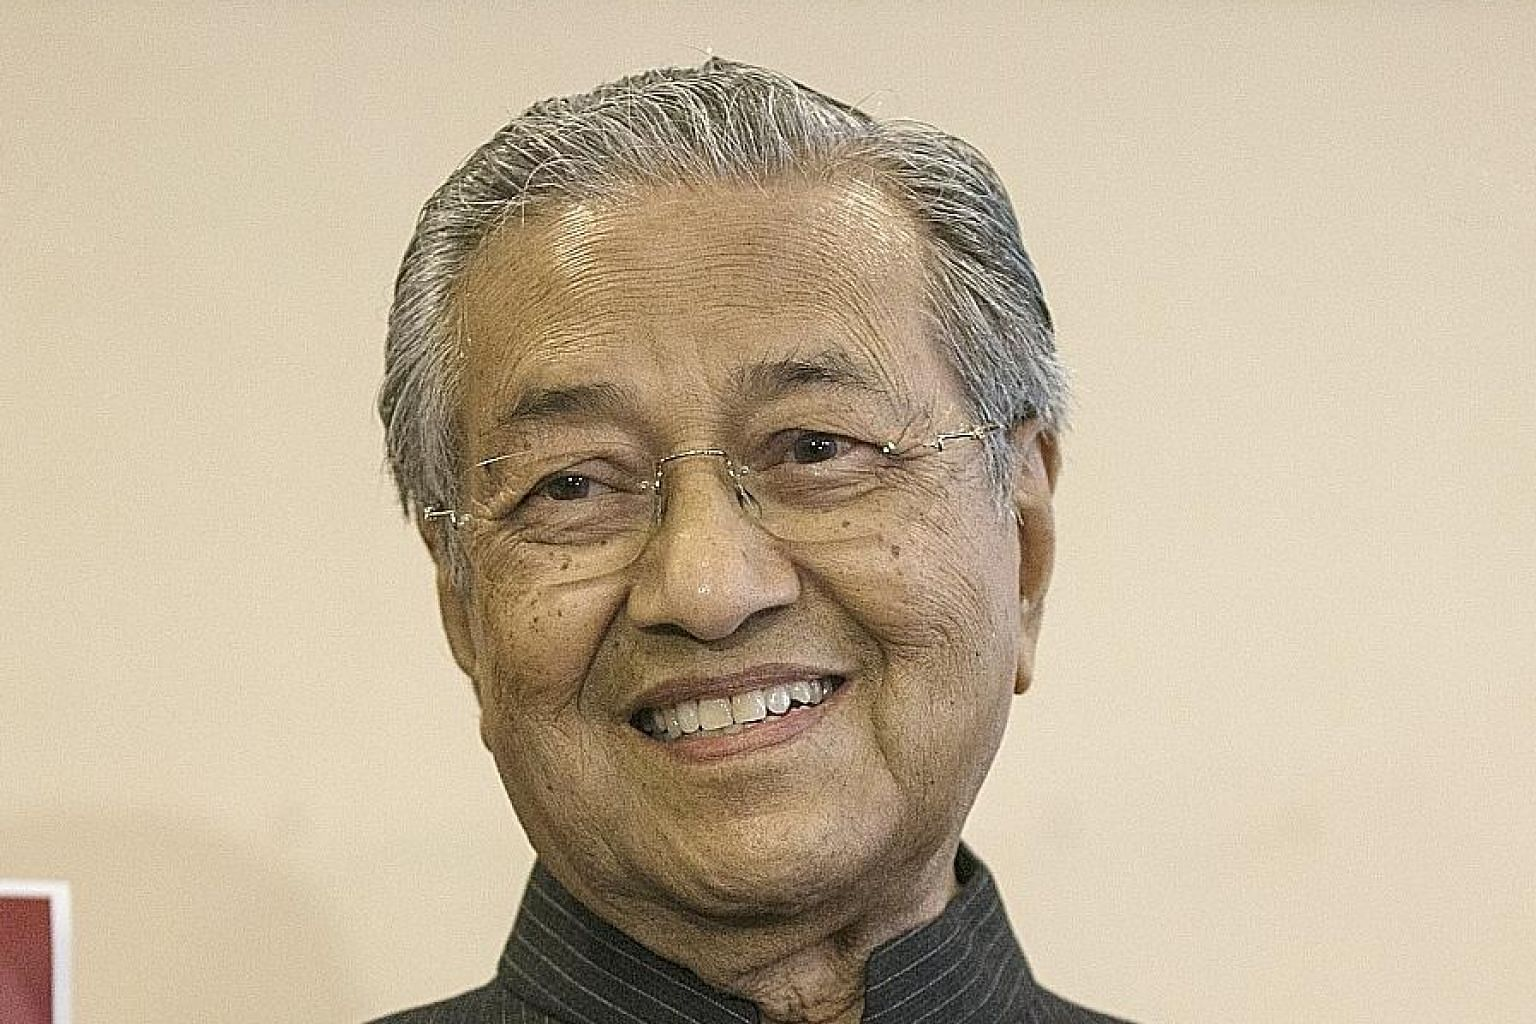 Tun Dr Mahathir Mohamad, the Pakatan Harapan's new chief, said state secrets were shared and discussed within the party leadership and he was told of the details by former deputy prime minister Muhyiddin Yassin.